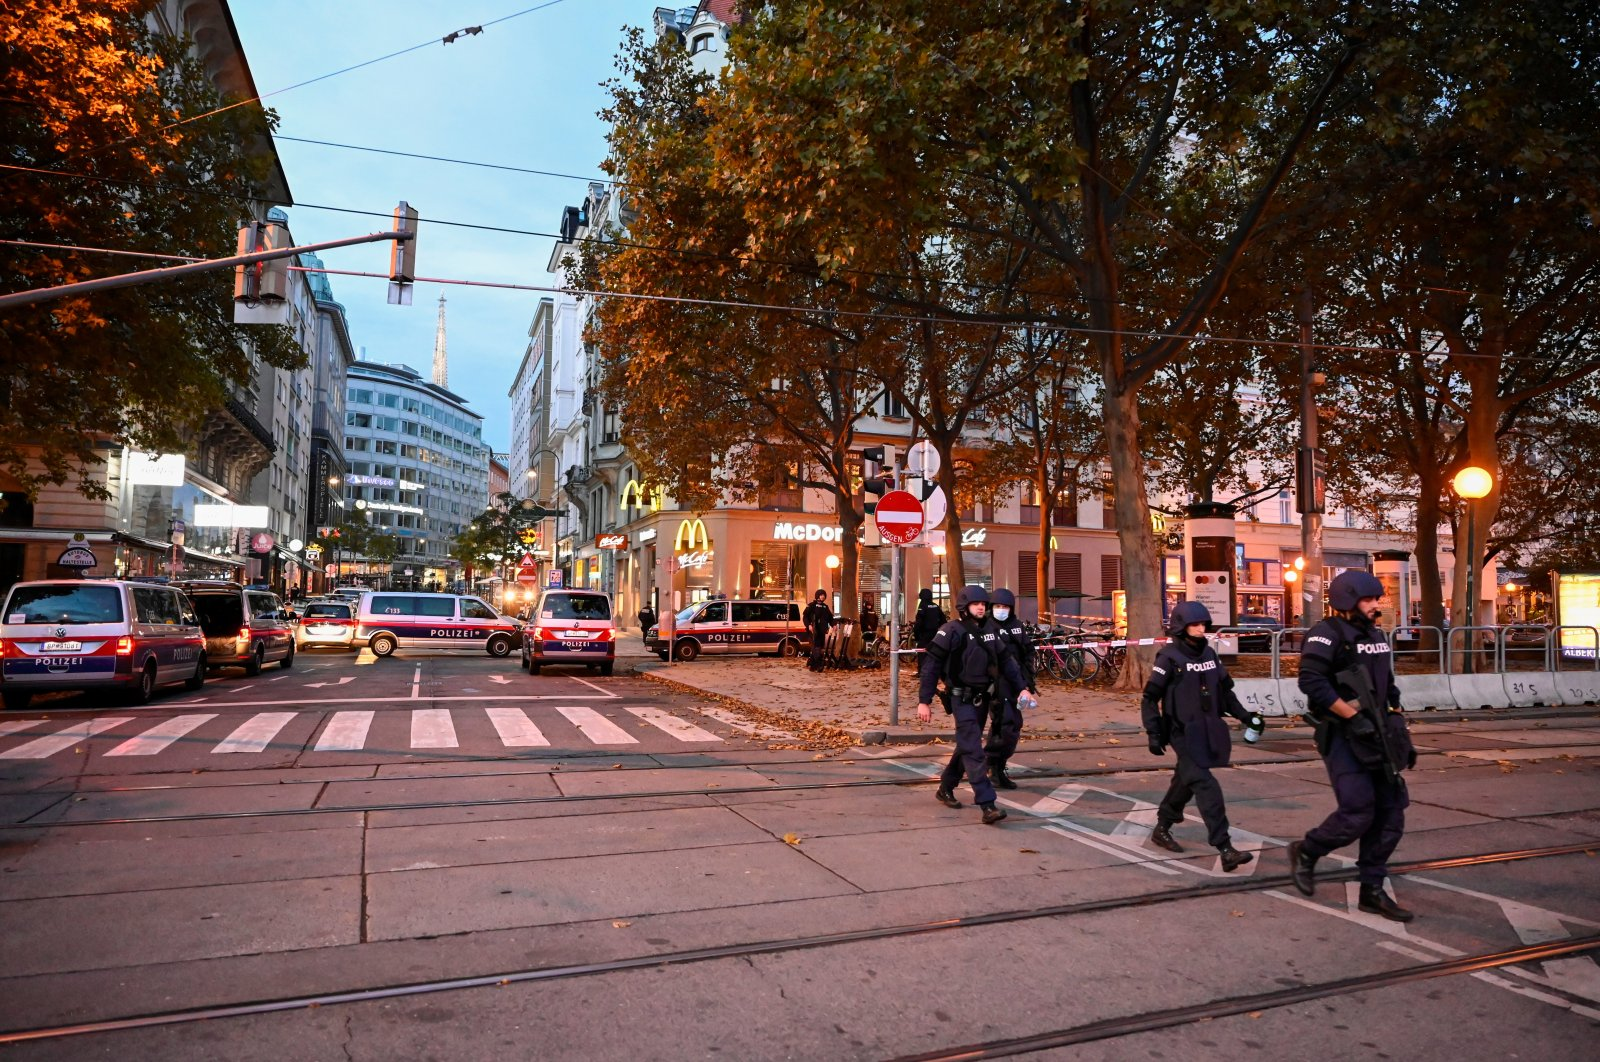 Police vehicles block off a street following a terrorist attack in Vienna, Austria, Nov. 3, 2020. (Reuters Photo)